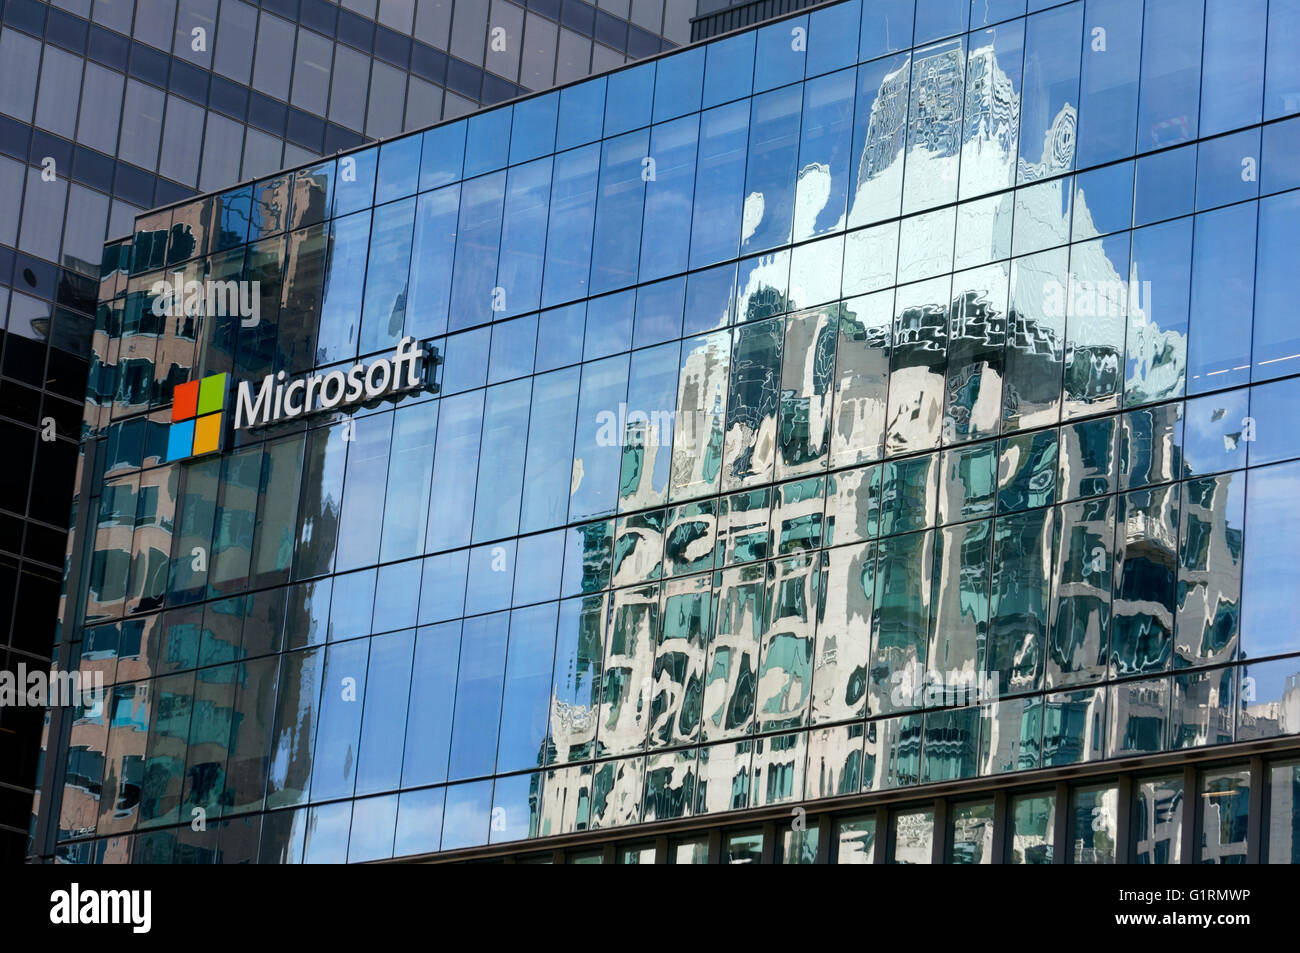 buildings-reflected-in-the-microsoft-can